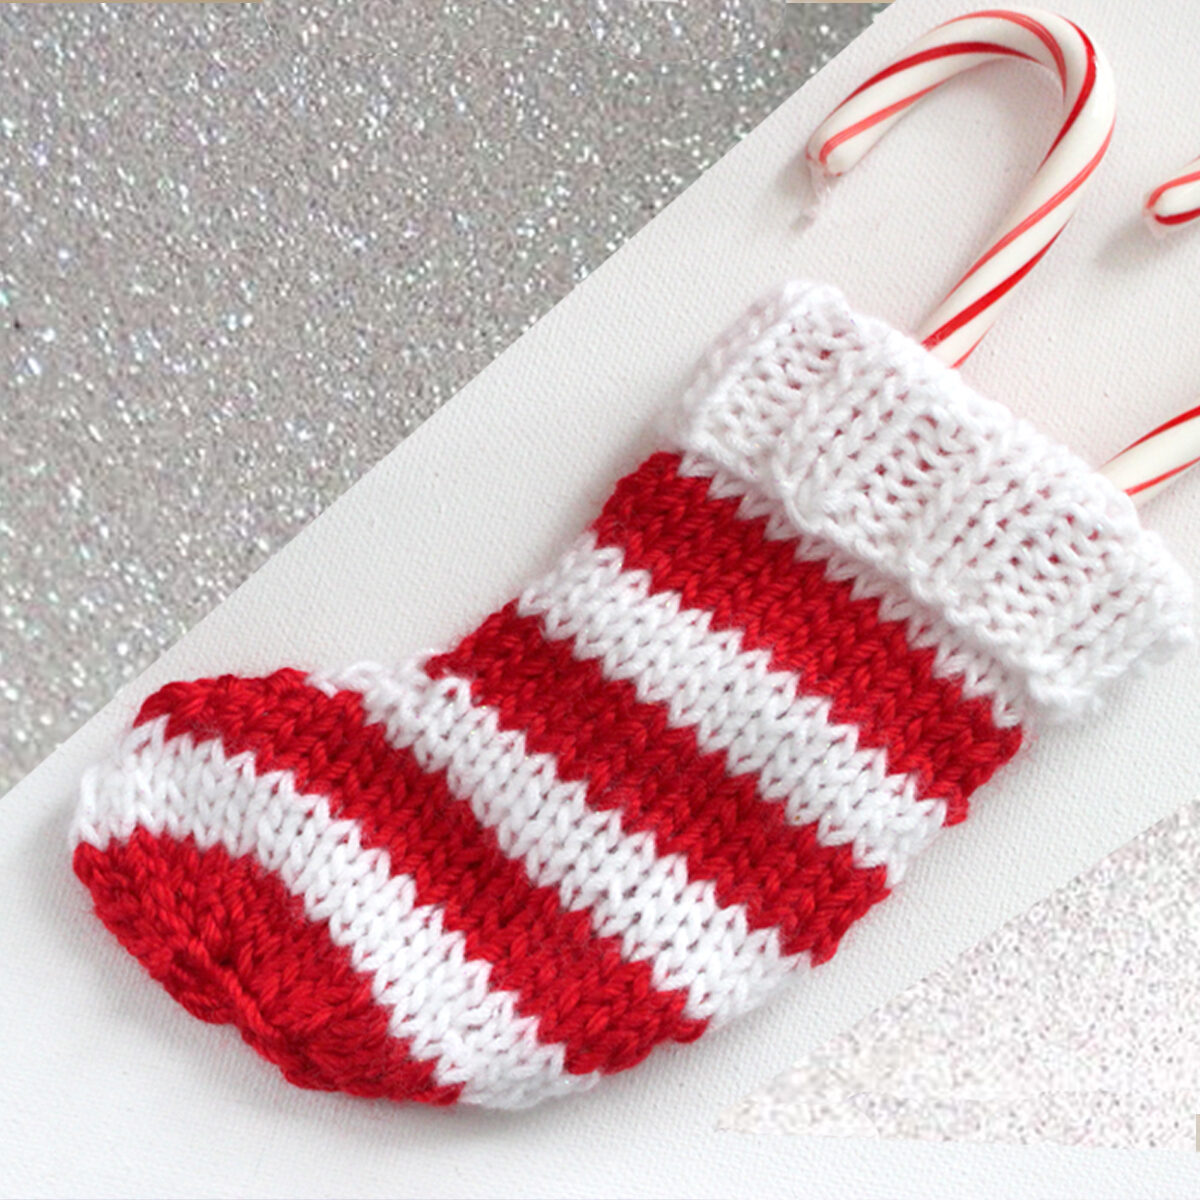 Knitted mini Christmas Stocking in alternating horizontal stripes in red and white yarn with candy canes inside.